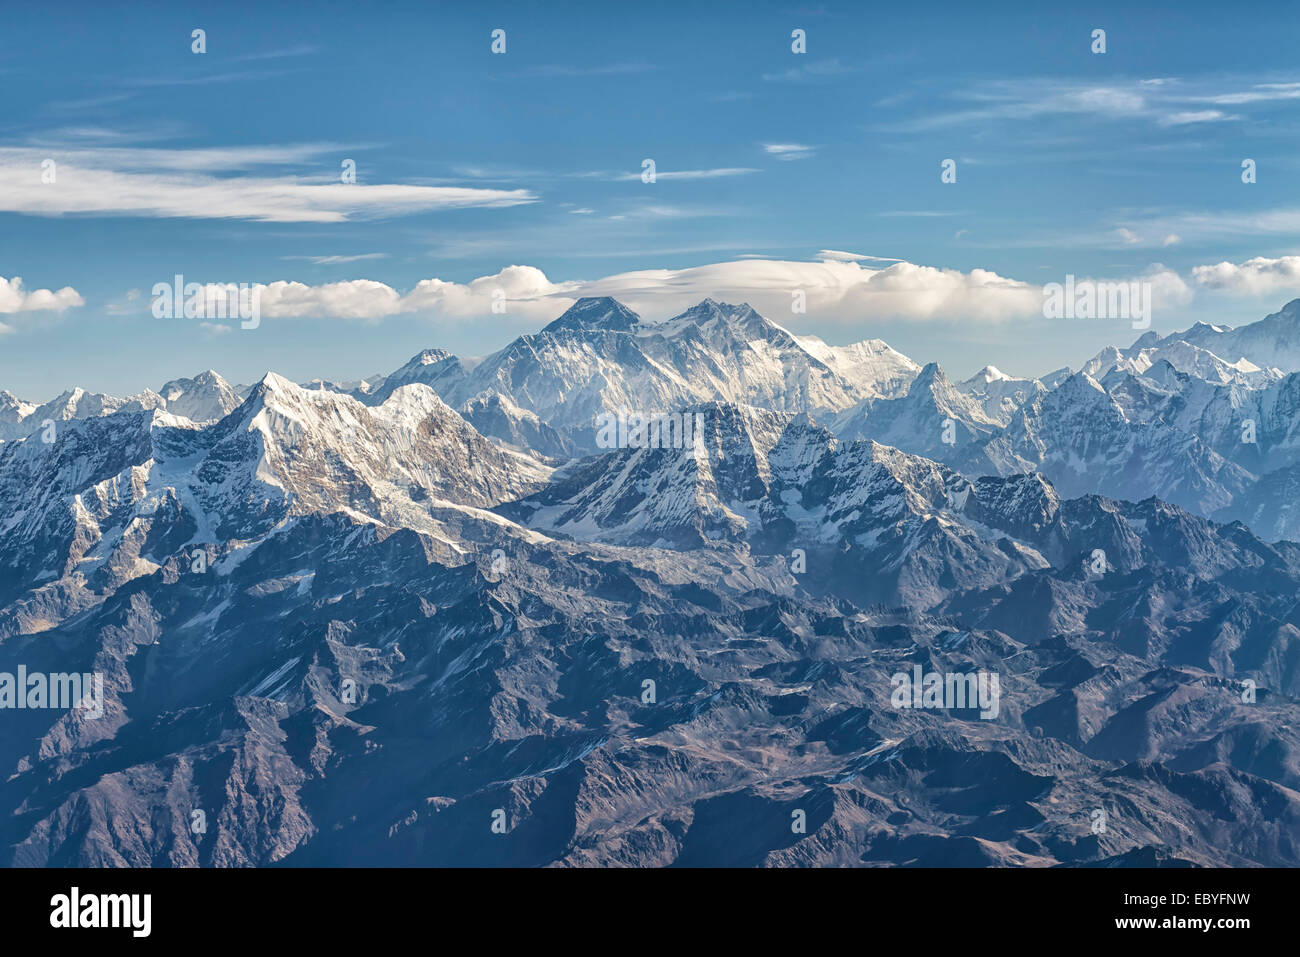 Le mont Everest en Mahalangur, Népal Photo Stock